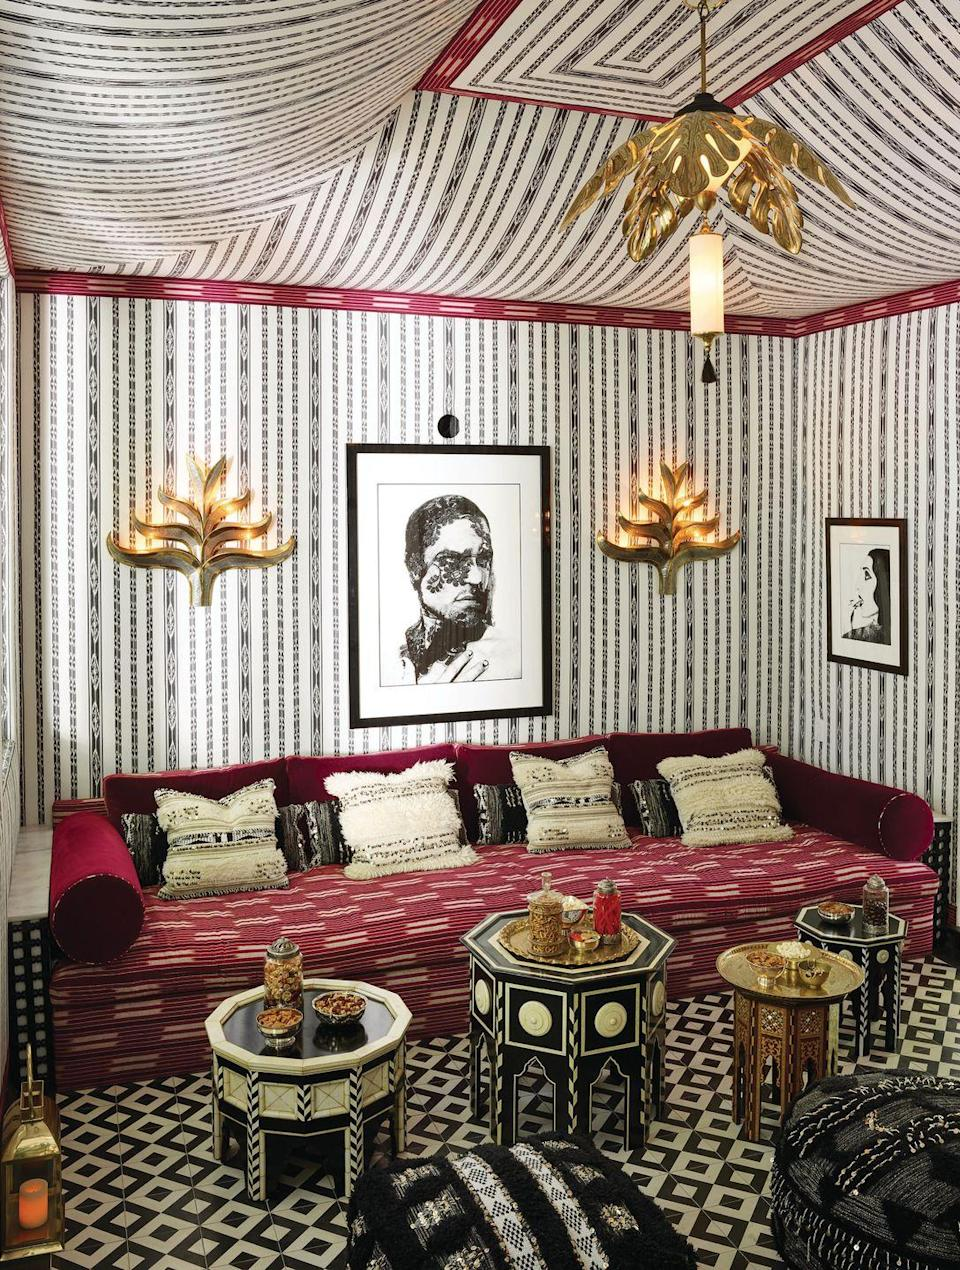 <p>Calling upon the embellished military tents treasured by African, Middle Eastern, and Roman leaders, Martyn Bullard Lawrence used an ikat print (Mariam Ikat) to give the room the illusion of more interesting architecture. Rounding out the boho feel, the California decorator paired vintage tea tables with lustrous embellishments. </p>